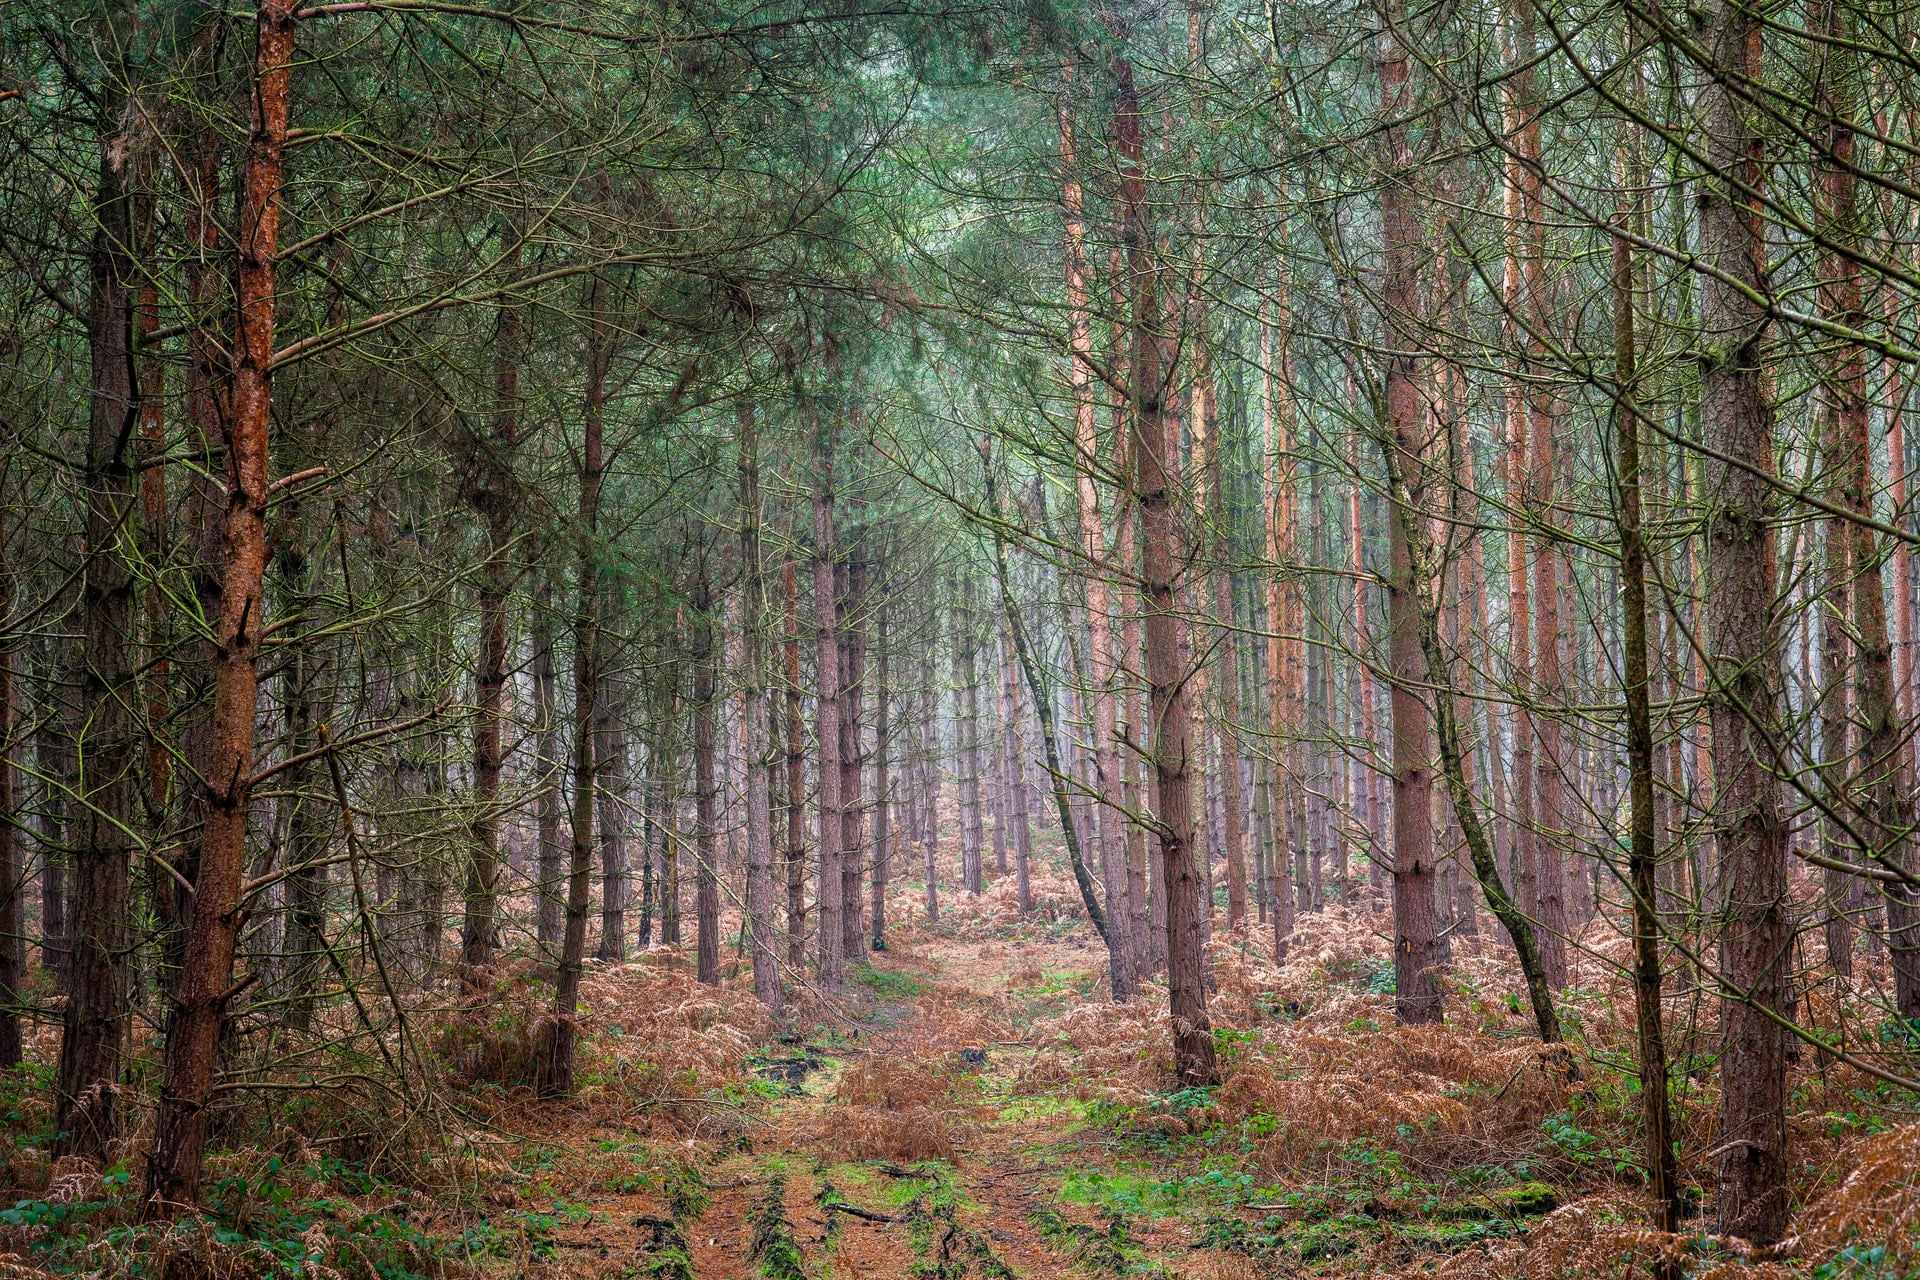 trail-leading-through-pine-trees-in-sherwood-forest